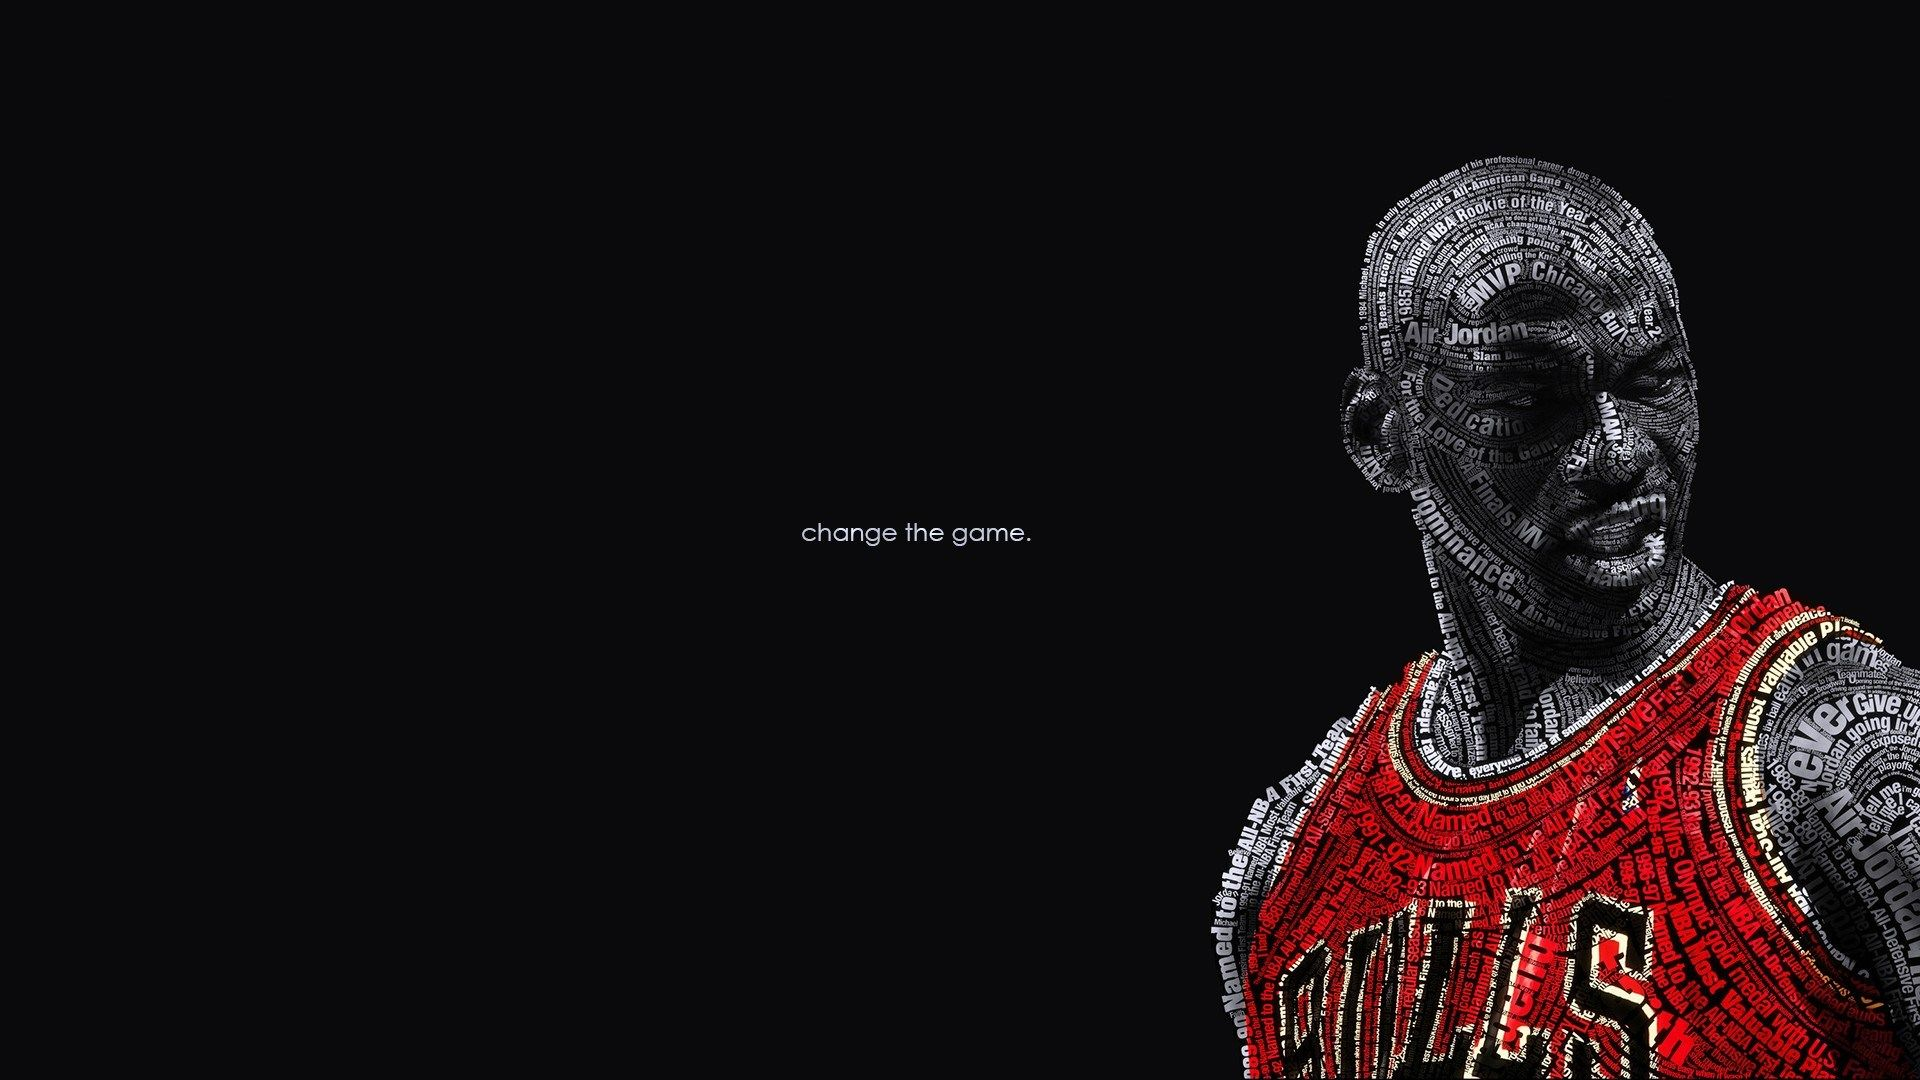 Basketball Desktop Background Pictures Free Jordan Logo Wallpaper Hypebeast Wallpaper Wallpaper Pc